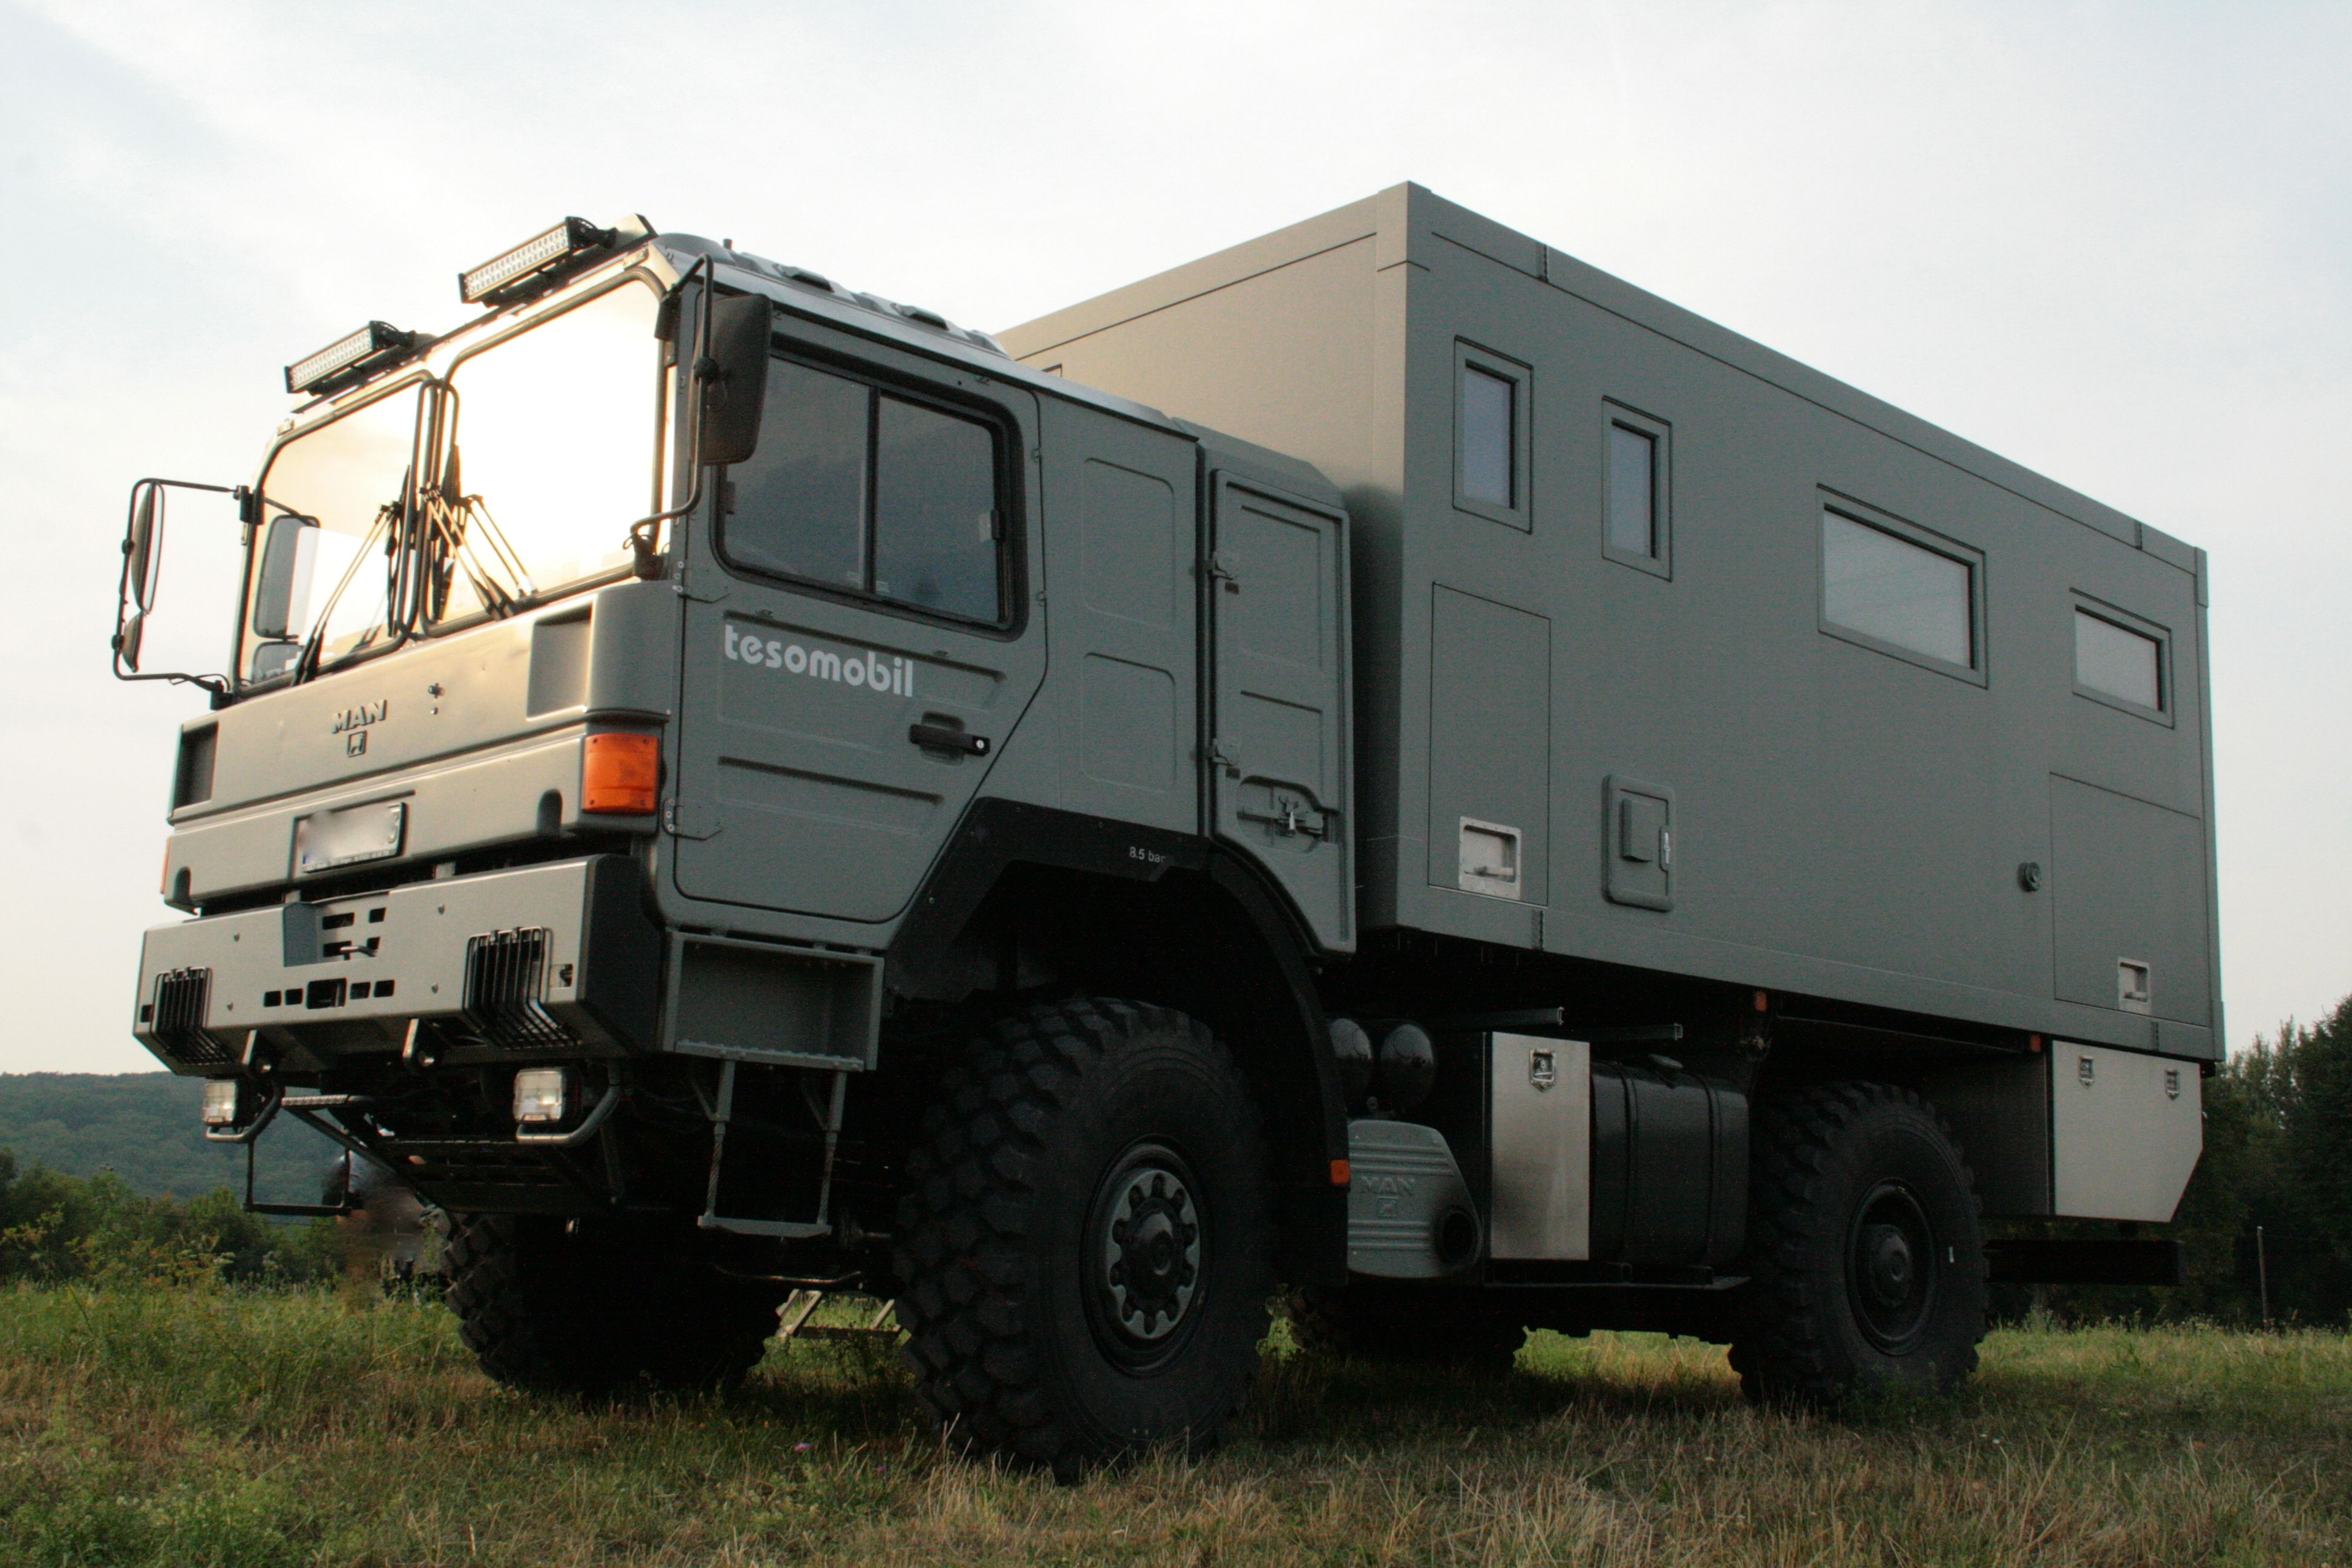 Unimog Survival Vehicle All Wheel Mobile Four Wheelers Voyage Manufacturers Expedition Mobile Construction Unica Camper Kaufen Truck Camper Expeditionsfahrzeug